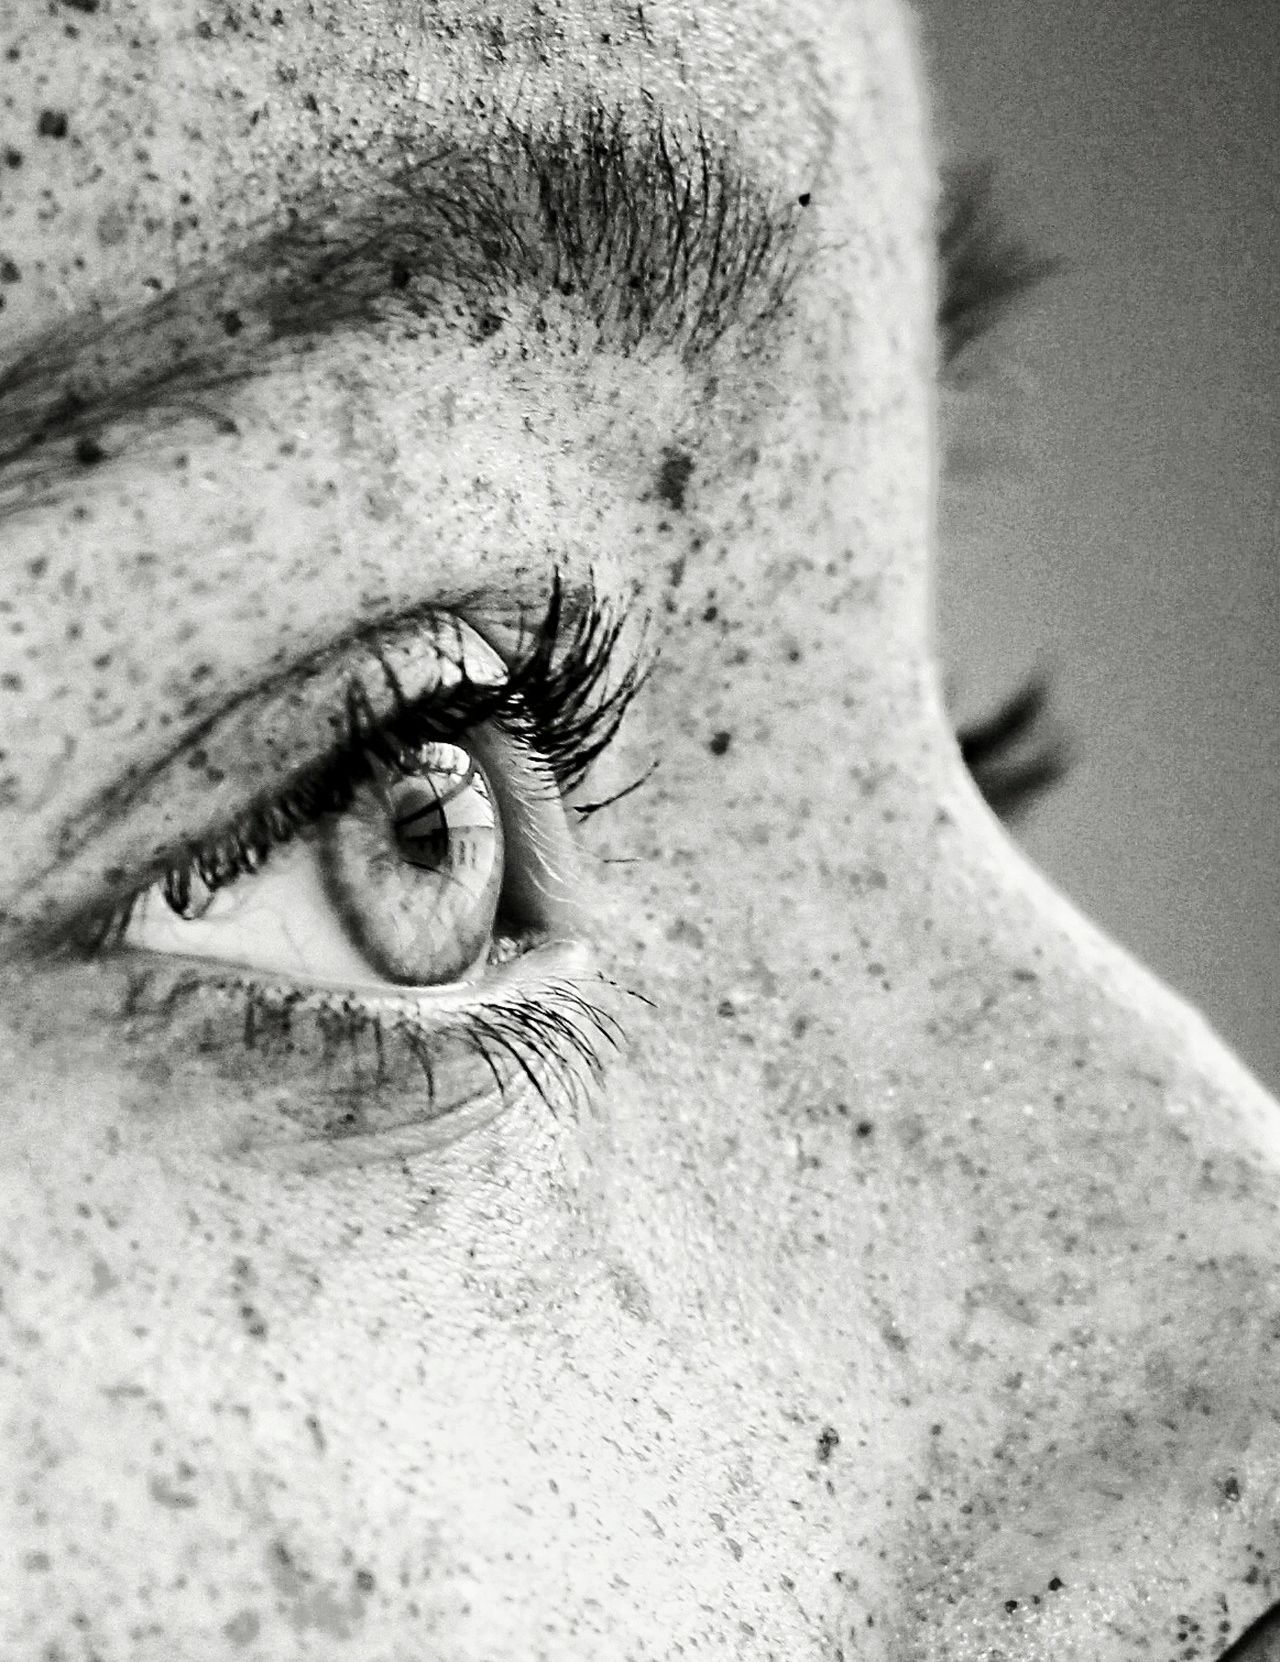 Gegenüber human eye eyelash close-up eye real people one person one woman only young adult human skin freckle eyebrow only women eyesight eyeball one young woman only sensory perception macro macro_collection people young women girl portrait women blackandwhite Monochrome_Photography uniqueness Fresh on Market 2017